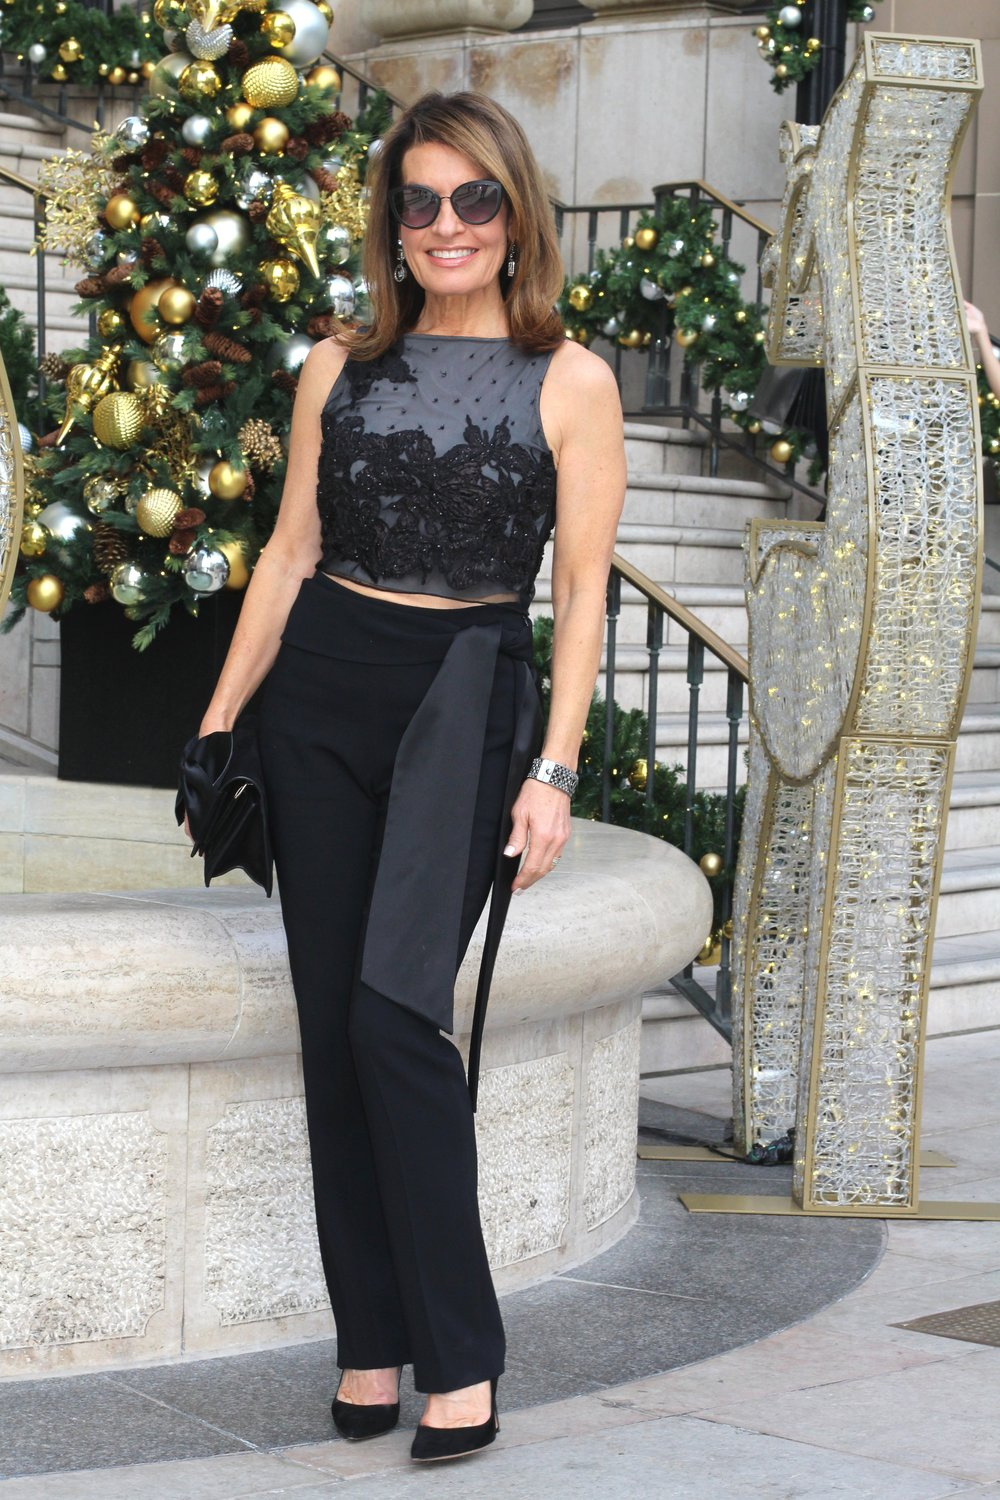 Tibi top    similar here   , Givenchy pants    similar here,    Victoria Beckham clutch    similar here,       Gianvito Rossi pumps   , Chanel cuff and shades,    Swarovski earrings